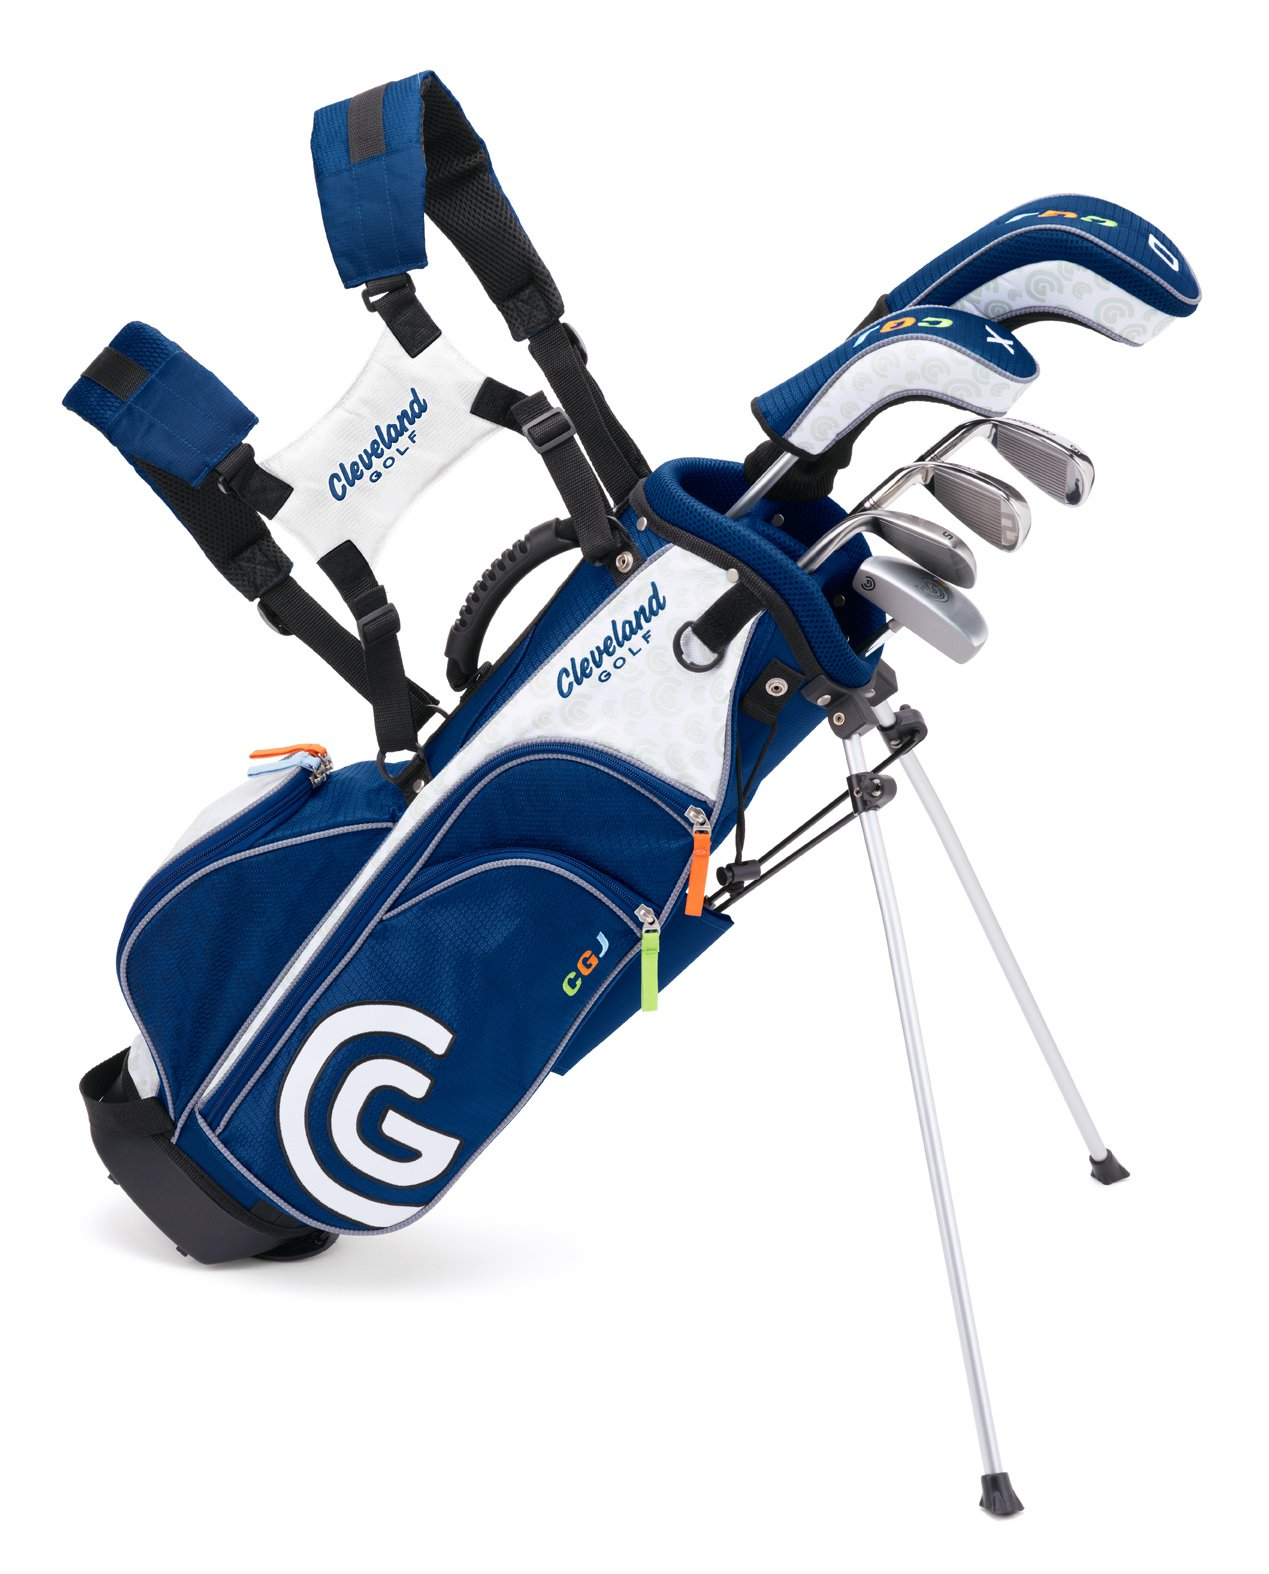 Cleveland Golf Junior Golf Set, Large Ages 10-12, 7 Clubs and Bag by Cleveland Golf